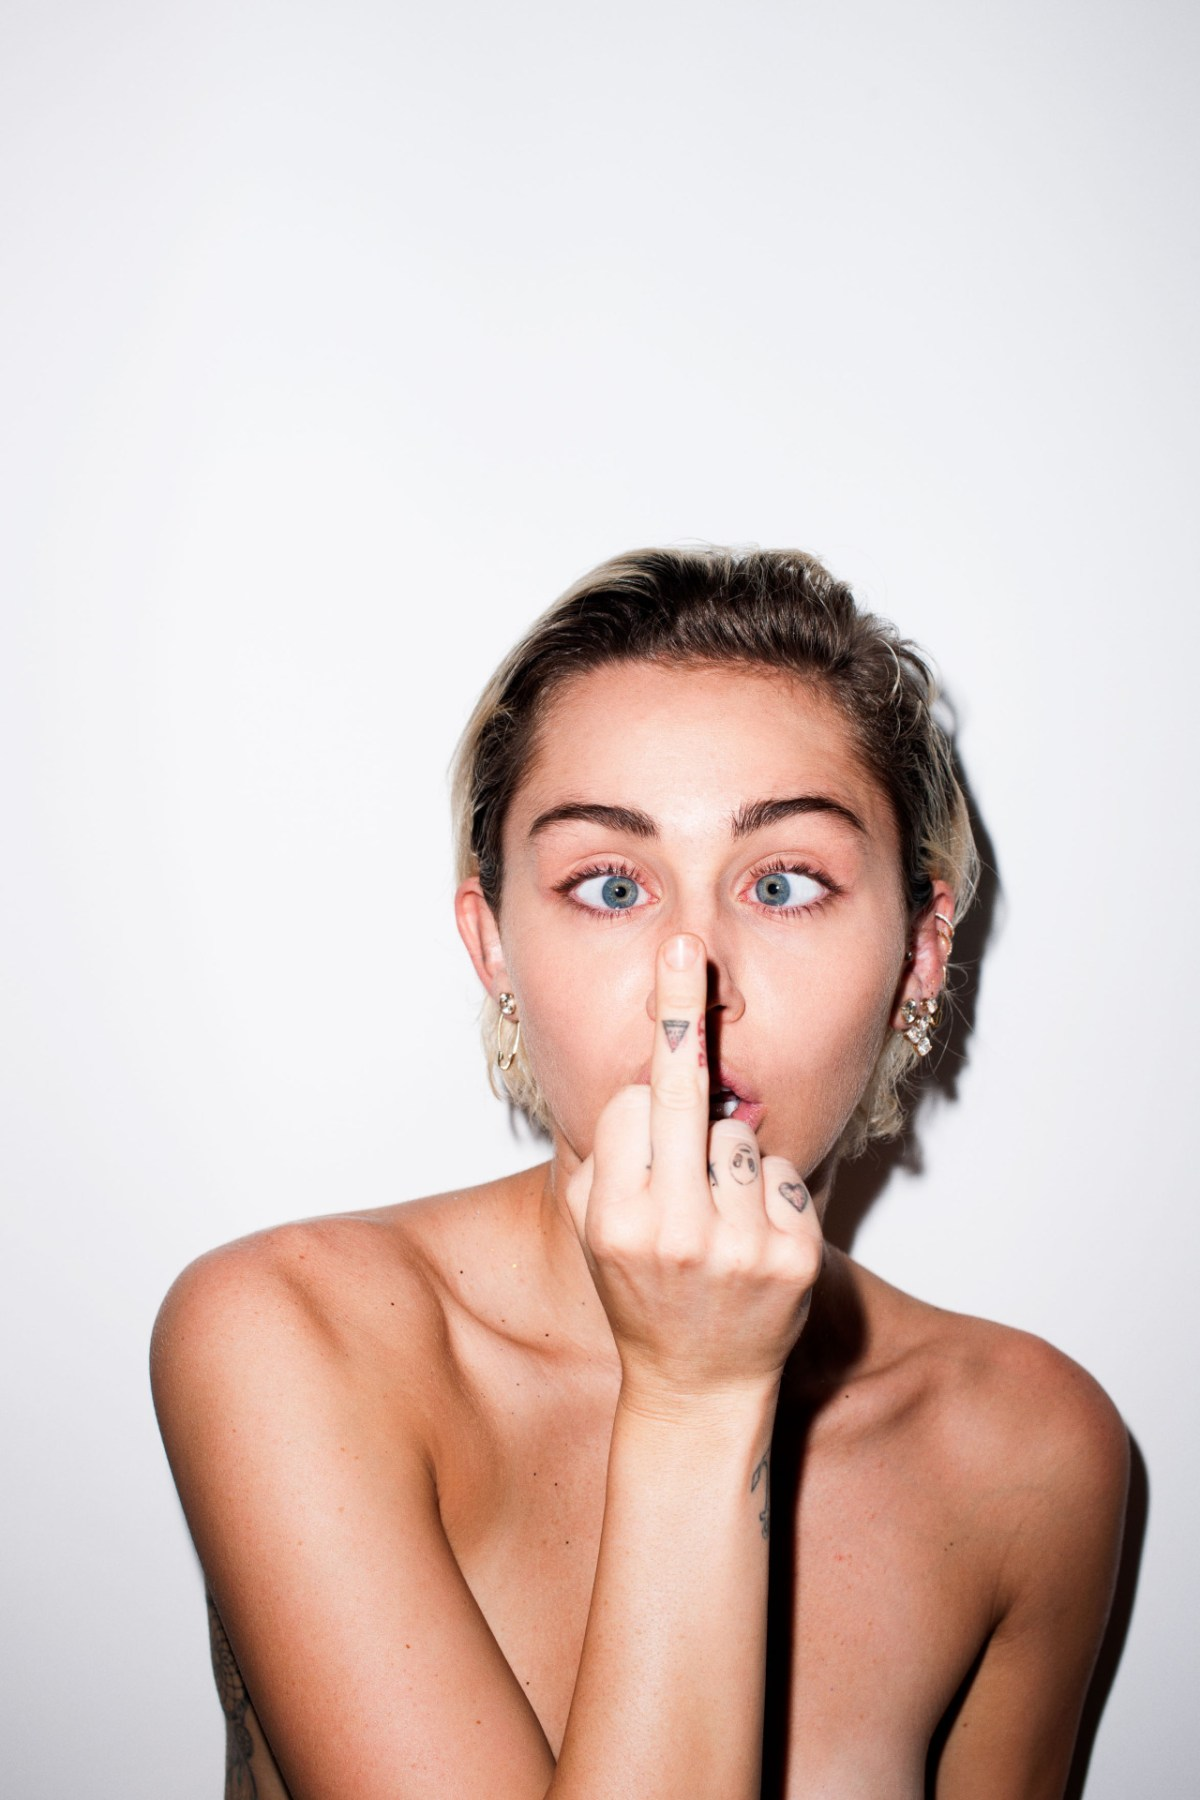 Miley Cyrus Poses Nude for Terry Richardson